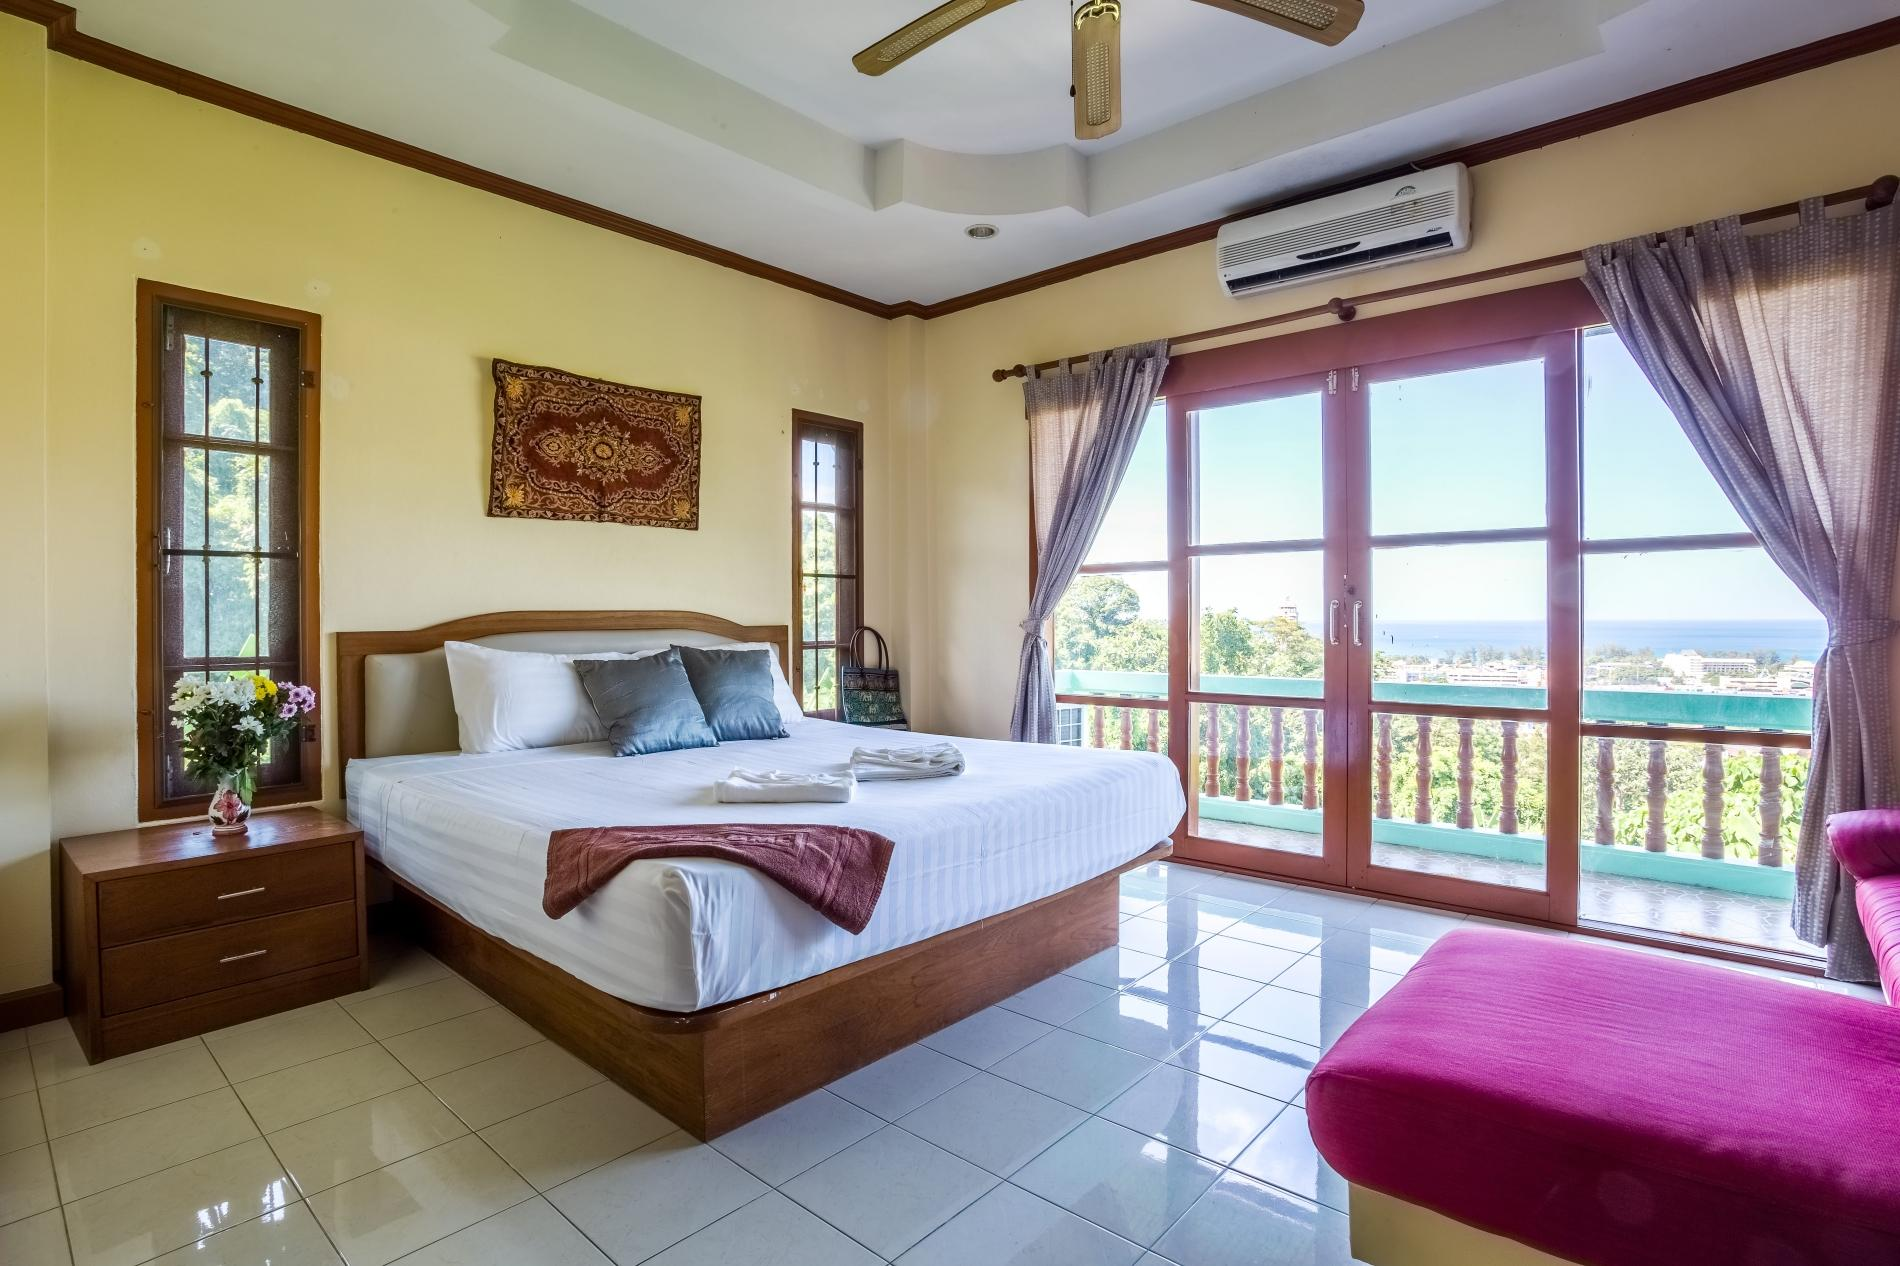 Apartment Vista Villa 1 - Seaview private pool villa in Patong for 9 people  photo 18253241